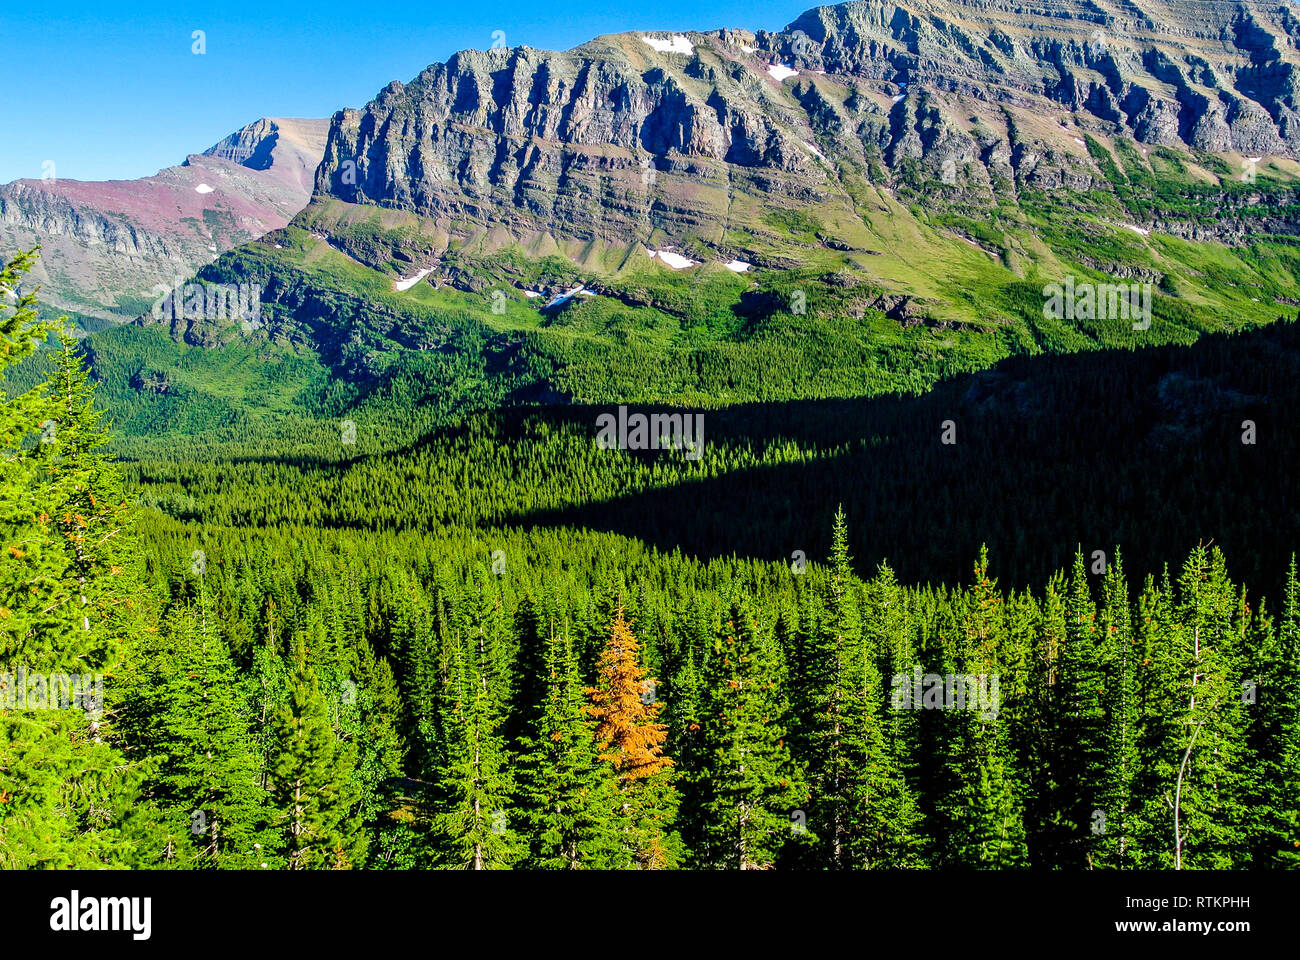 Shadows work their way across a valley in Glacier National Park - Stock Image